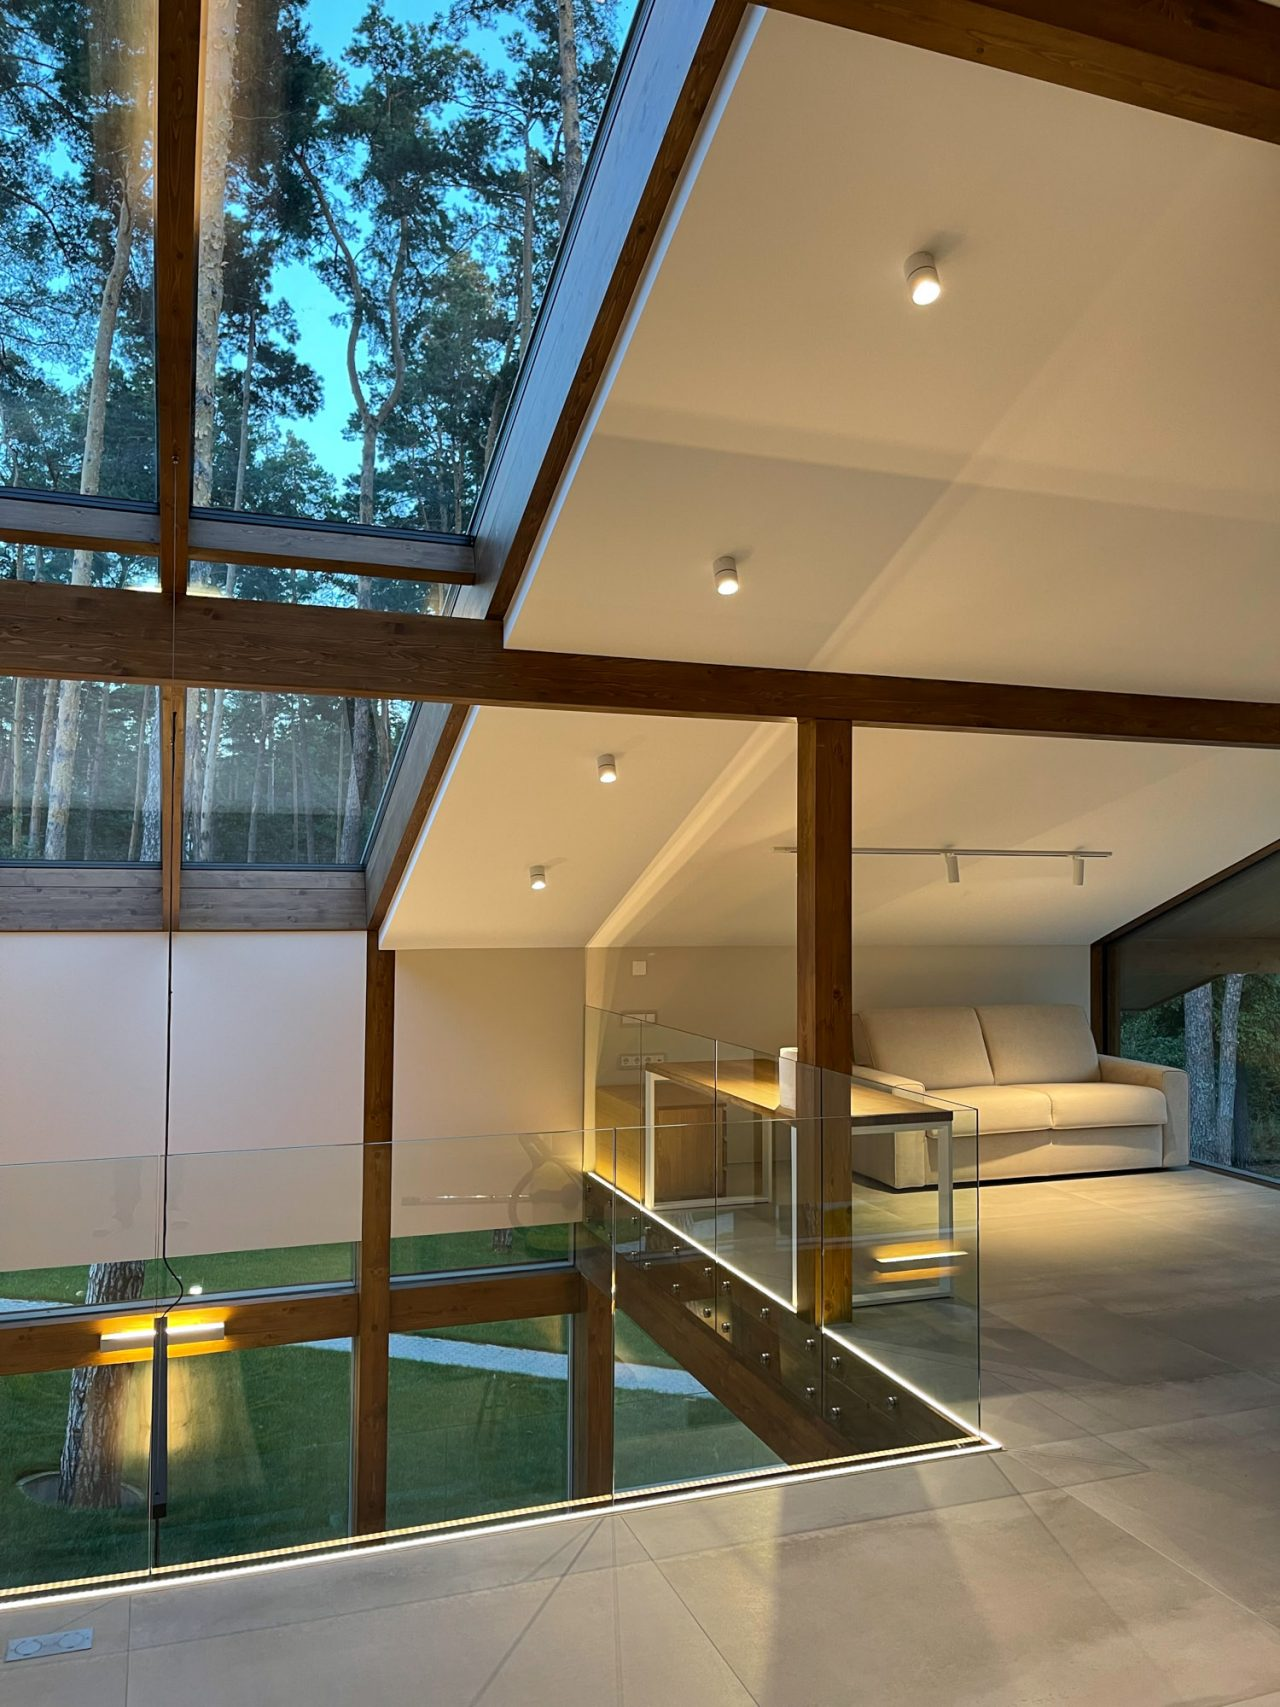 Hlass_house_KAGER - Hurii_26